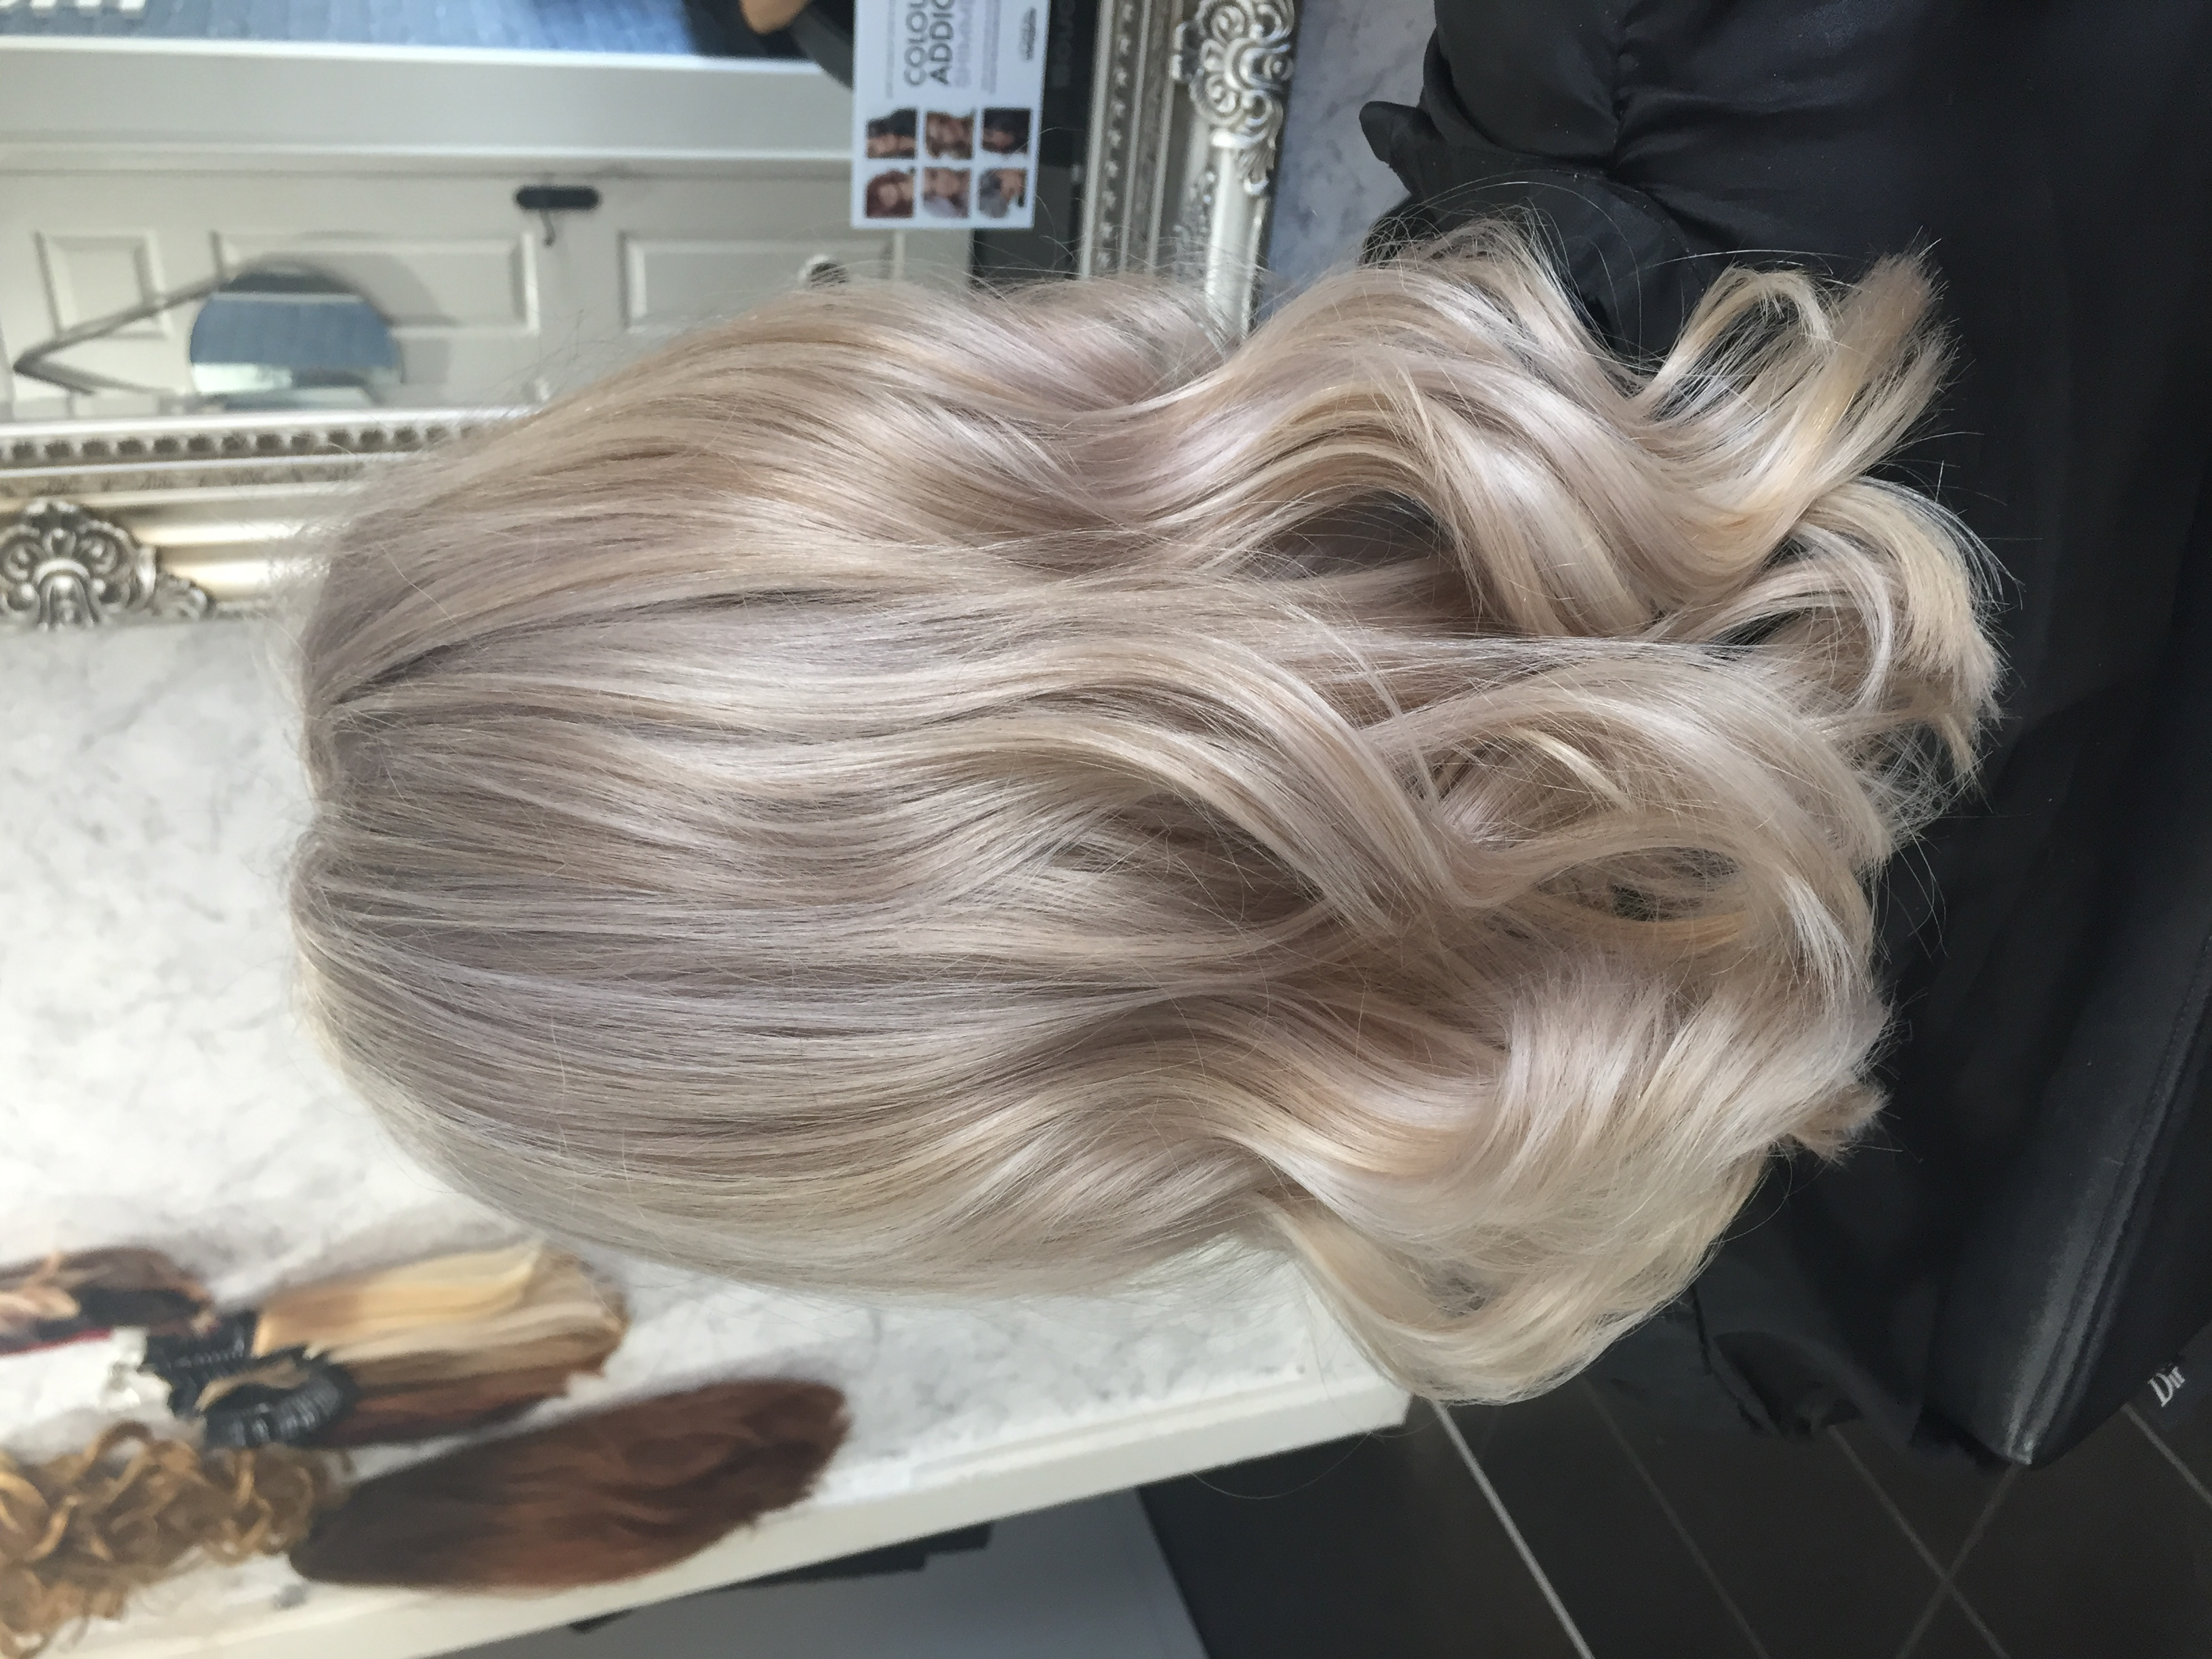 vanilla blonde hair colour created in professional hair salon